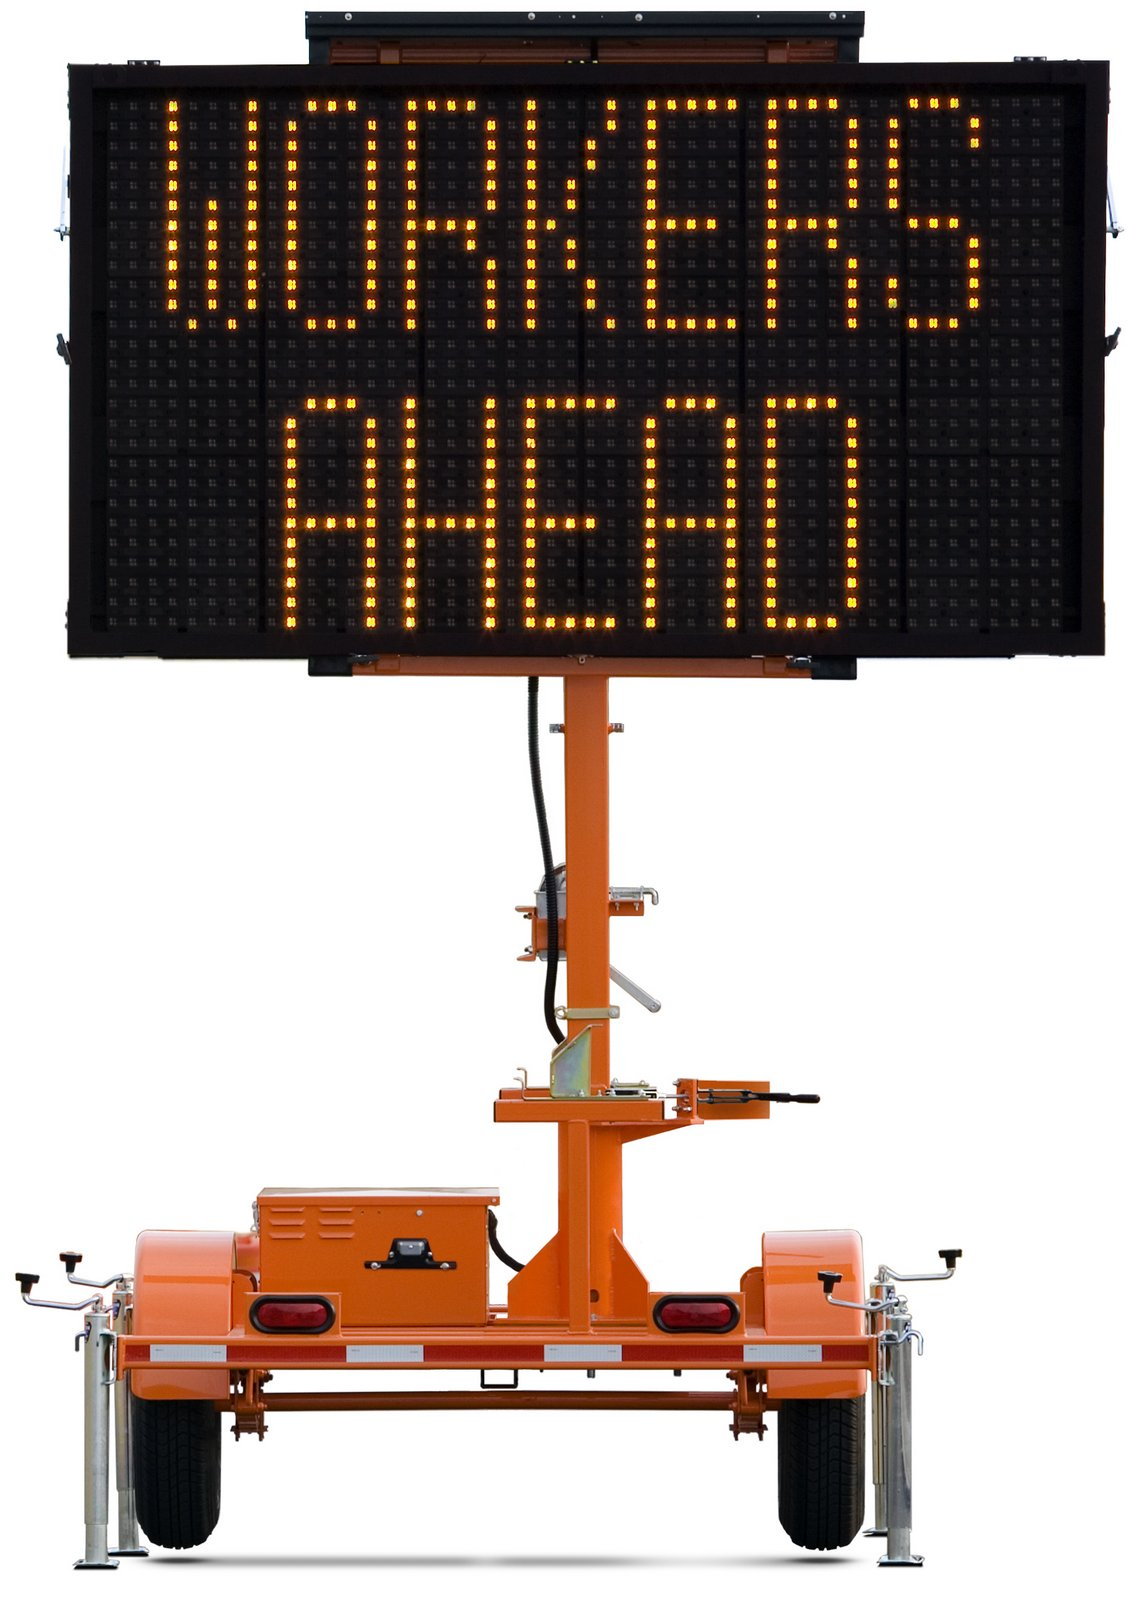 Mini Matrix Variable Message Sign